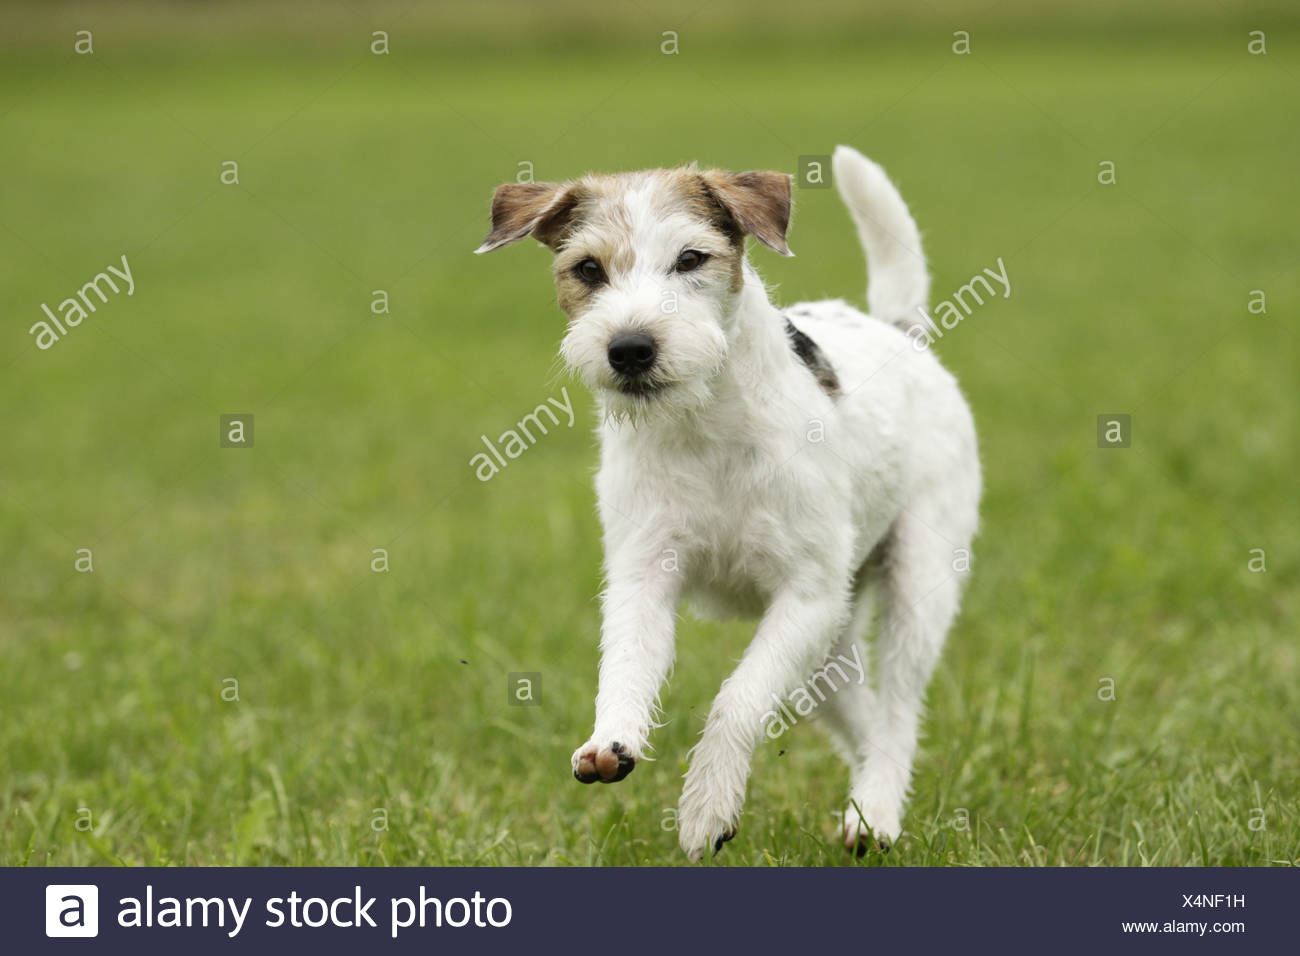 Parson Russell Terrier outdoor - Stock Image